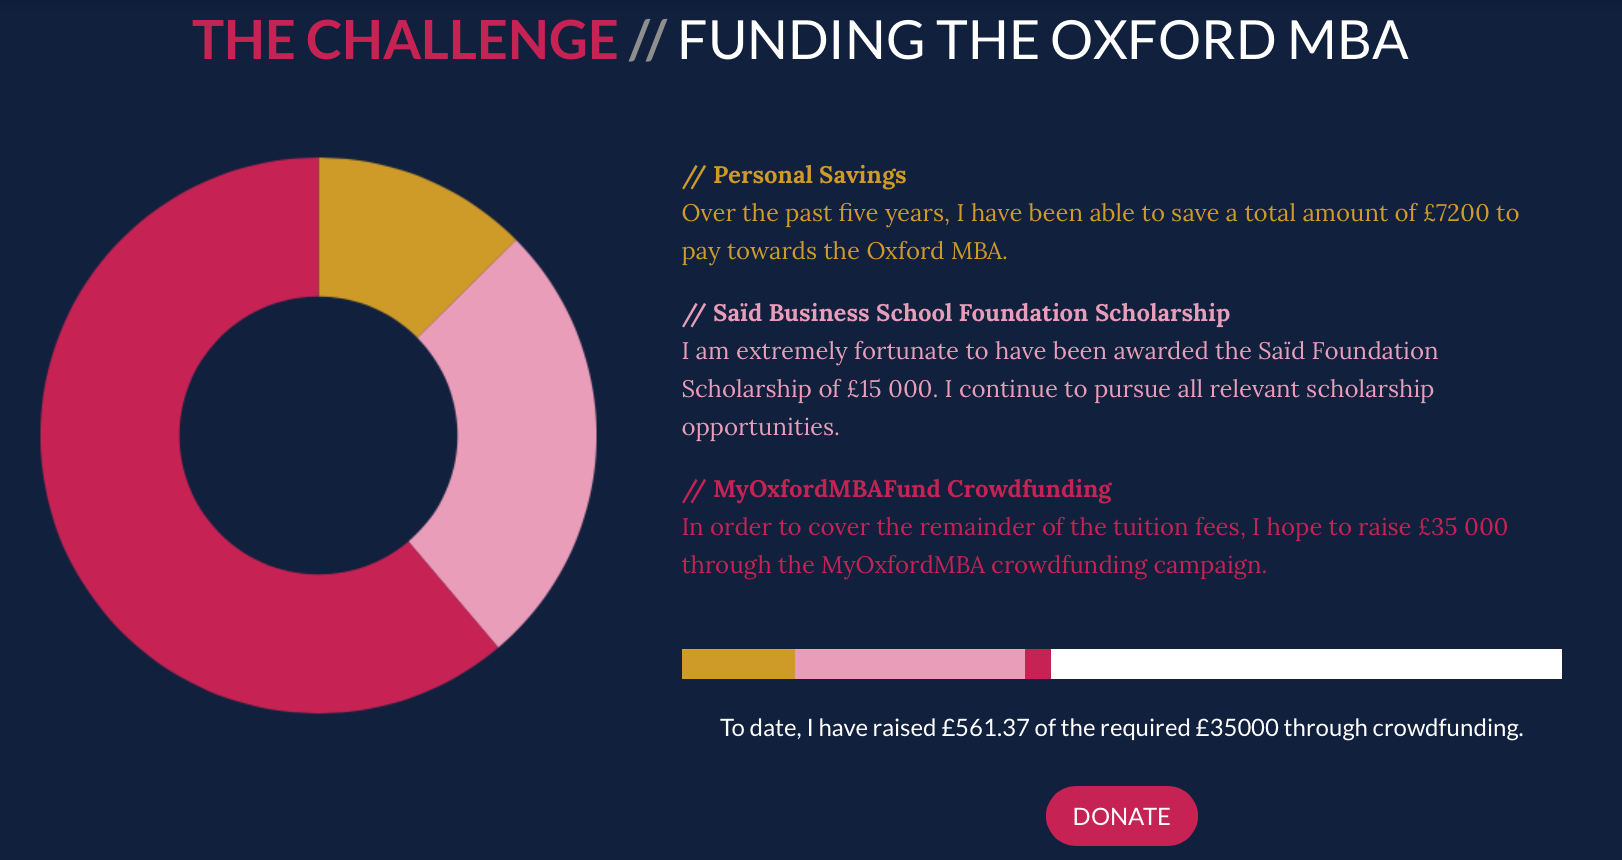 The Challenge // Funding the Oxford MBA. Personal Savings: Over the past five years, I have been able to save a total amount of £7200. Said Business School Foundation Scholarship: I am extremely fortunate to have been awarded the Saïd Foundation Scholarship of £15 000. I continue to pursue all relevant scholarship opportunities. MyOxfordMBA Crowdfunding: In order to cover the remainder of the tuition fees, I hope to raise £35 000 through the MyOxfordMBA crowdfunding campaign. Both he circle graph and goal bar reflect each of these contributions and the £561.37 raised at the time this article was published.